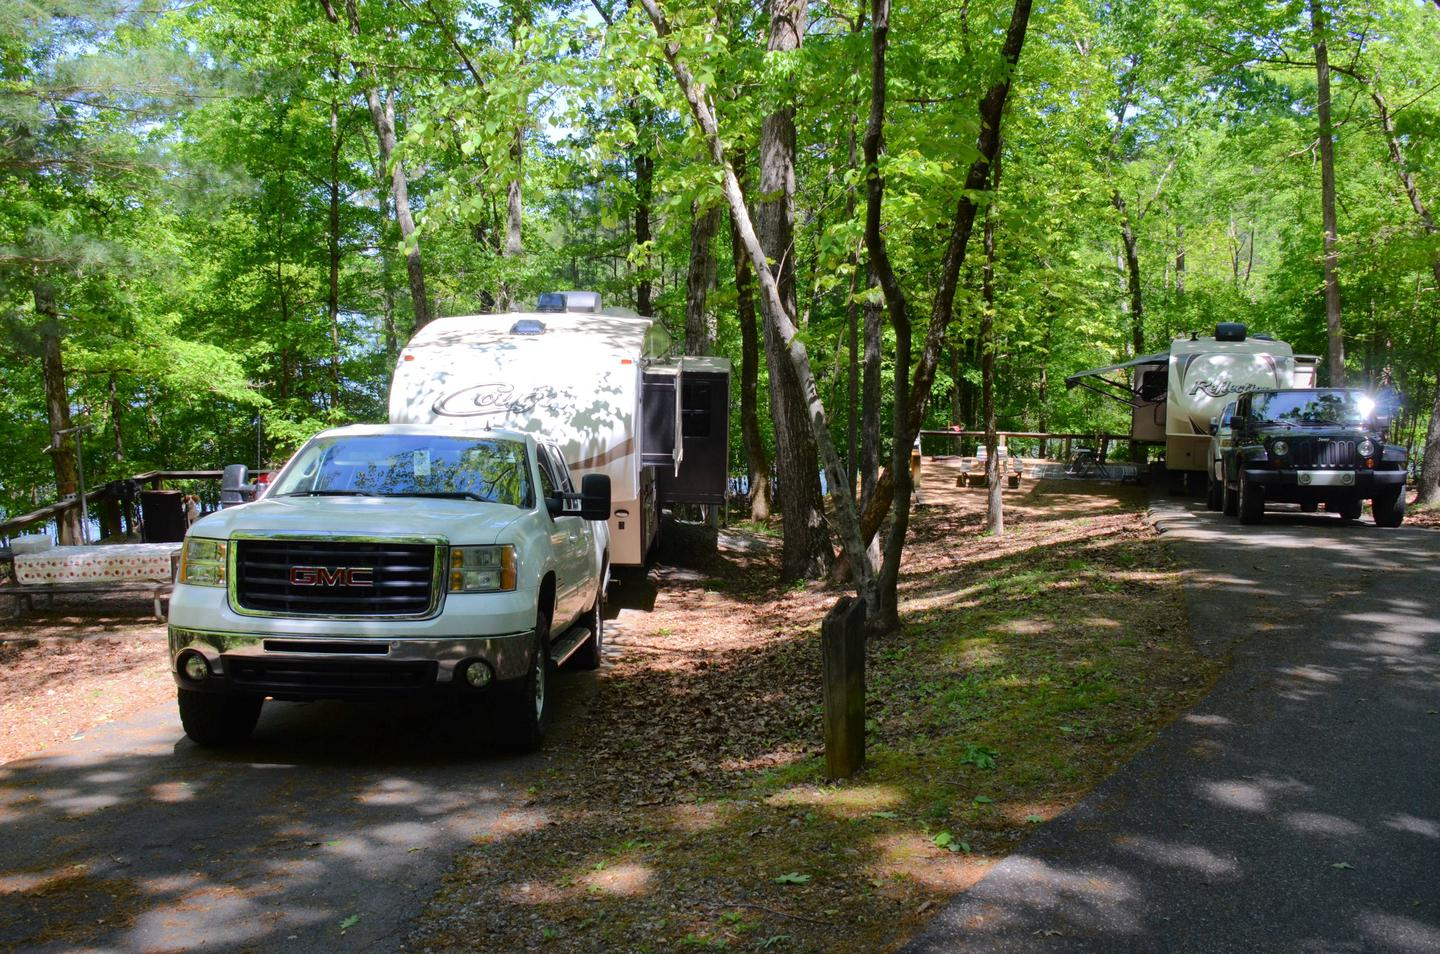 Driveway entrance angle/slope, utilities-side clearance.McKinney Campground, campsite 85.